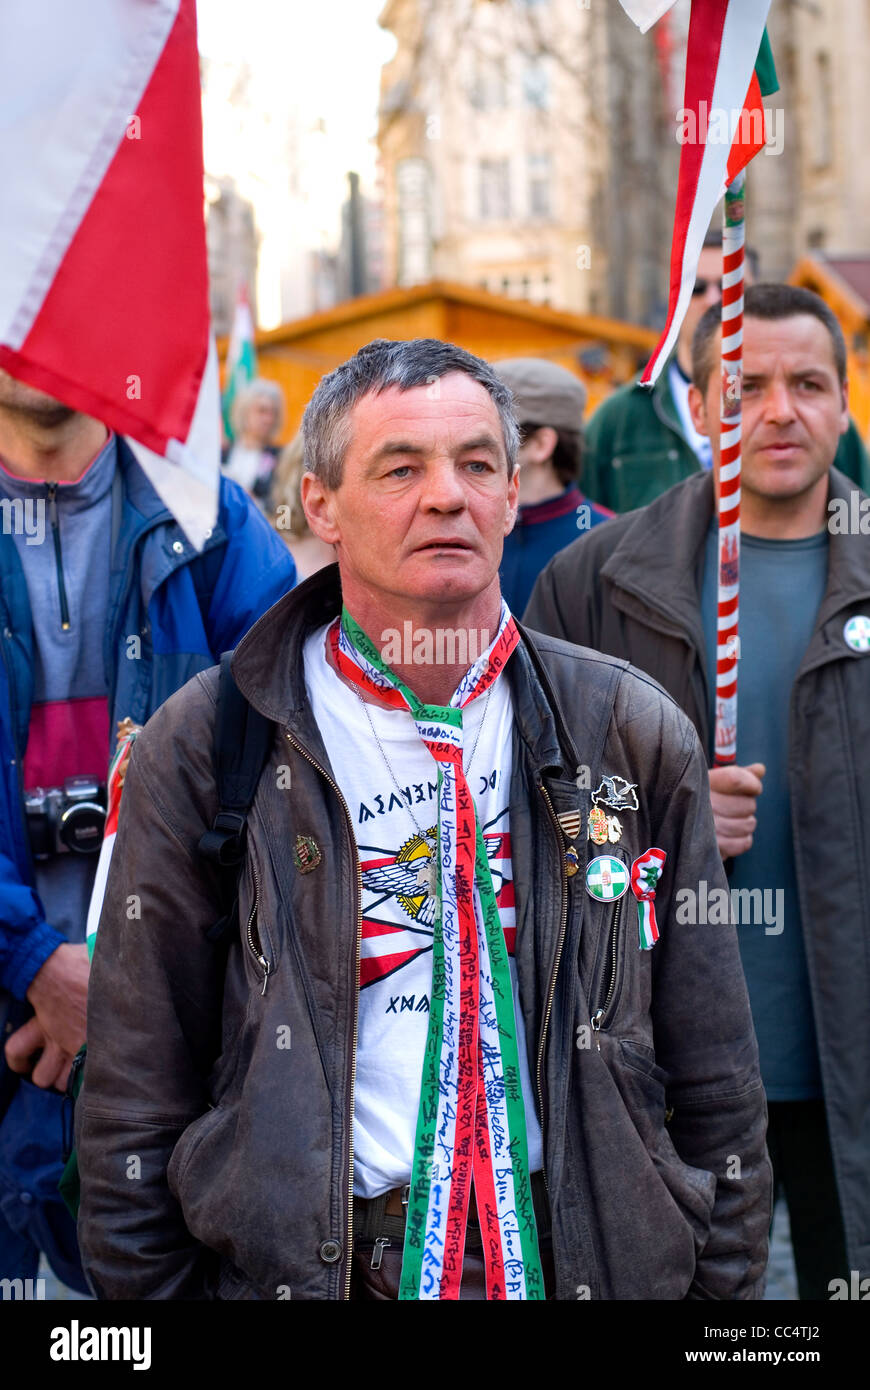 Hungarian nationalists demonstrate at the occasion of the 15 March commemoration of the 1848 revolution in Budapest - Stock Image